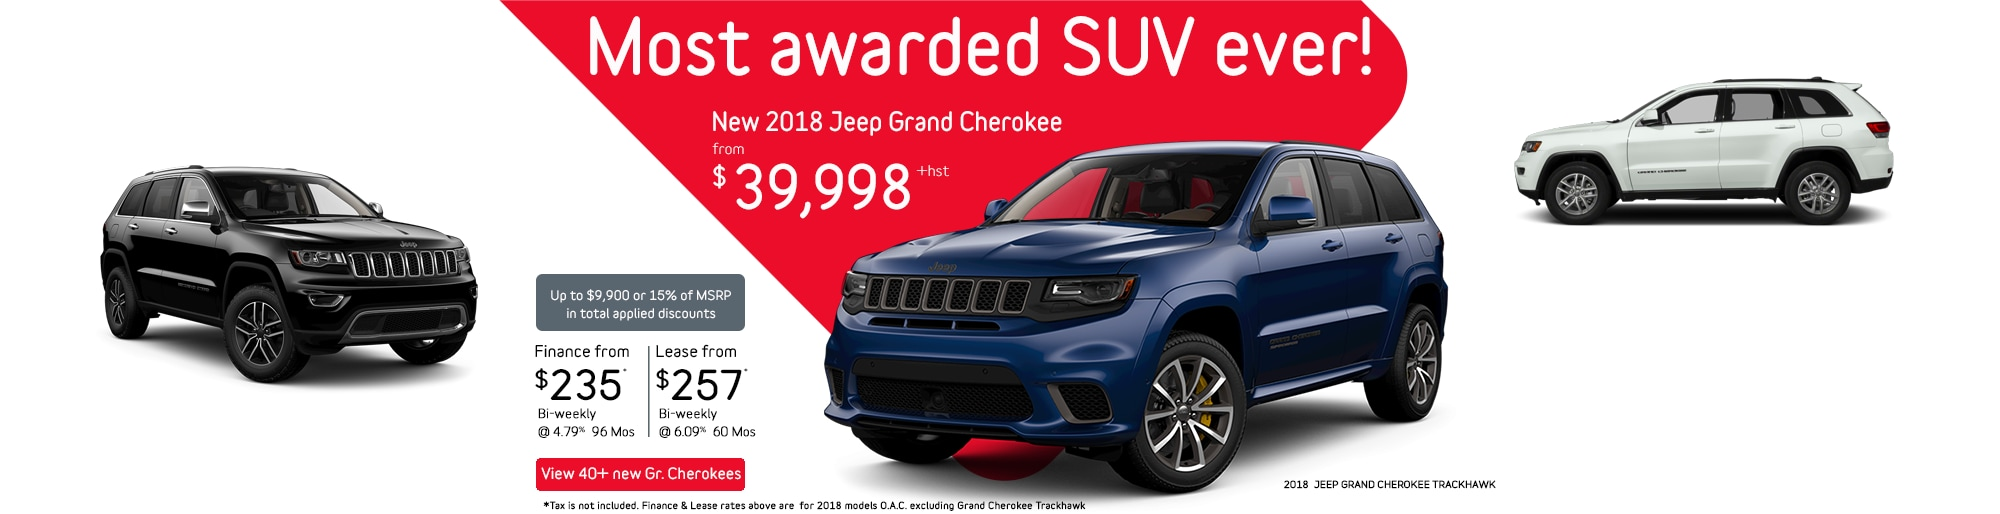 ny poughkeepsie lease model jeep financing info htm deals renegade and